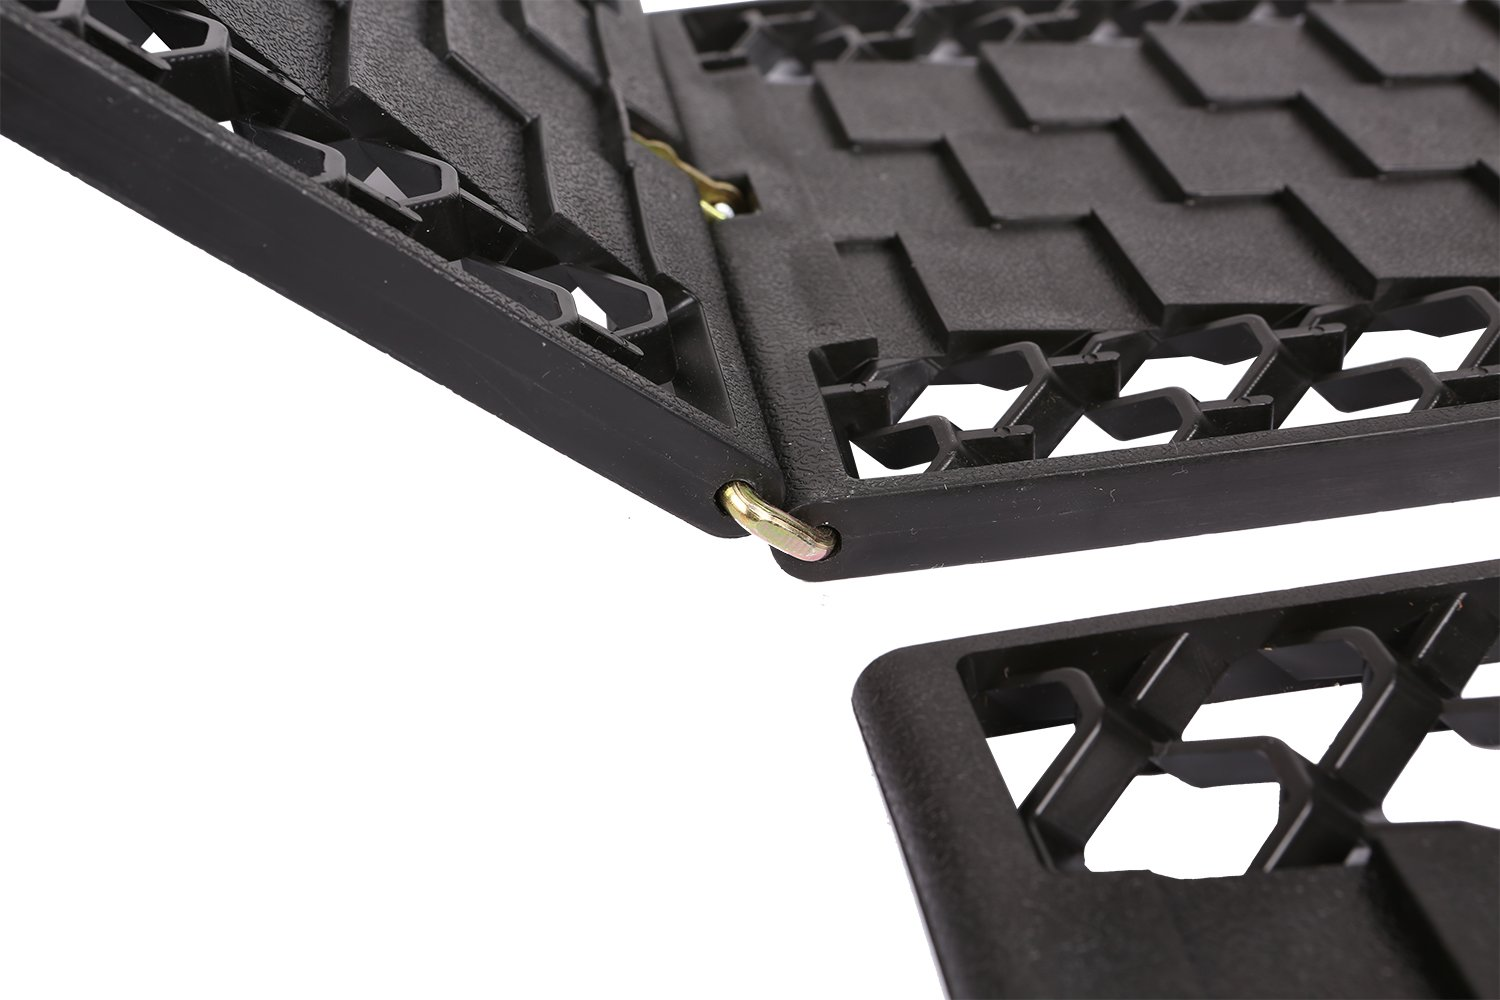 OFFROAD BOAR Foldable Auto Traction Mat Tire Grip Aid, Best Snow Chain Alternative(Black) by OFFROAD BOAR (Image #4)